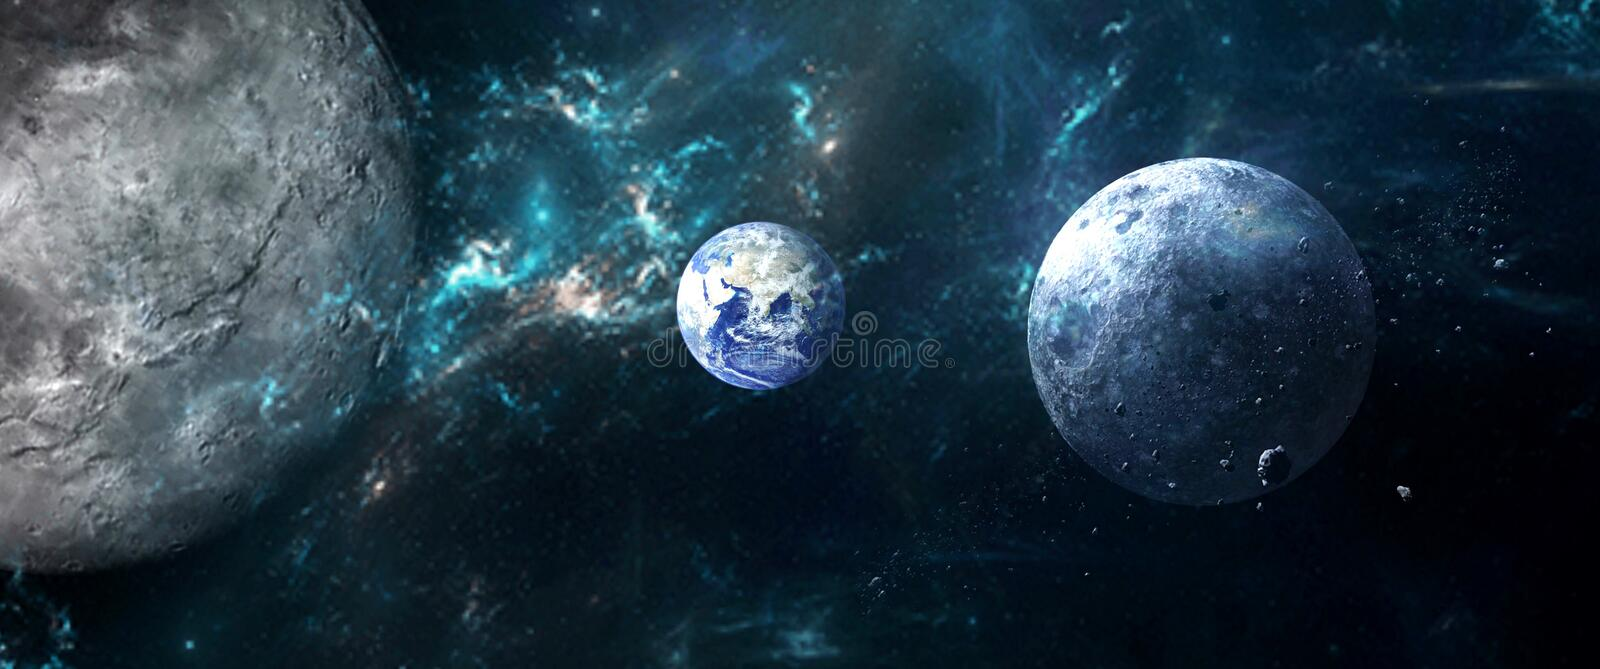 Planets and galaxies, science fiction wallpaper. Beauty of deep space. royalty free illustration